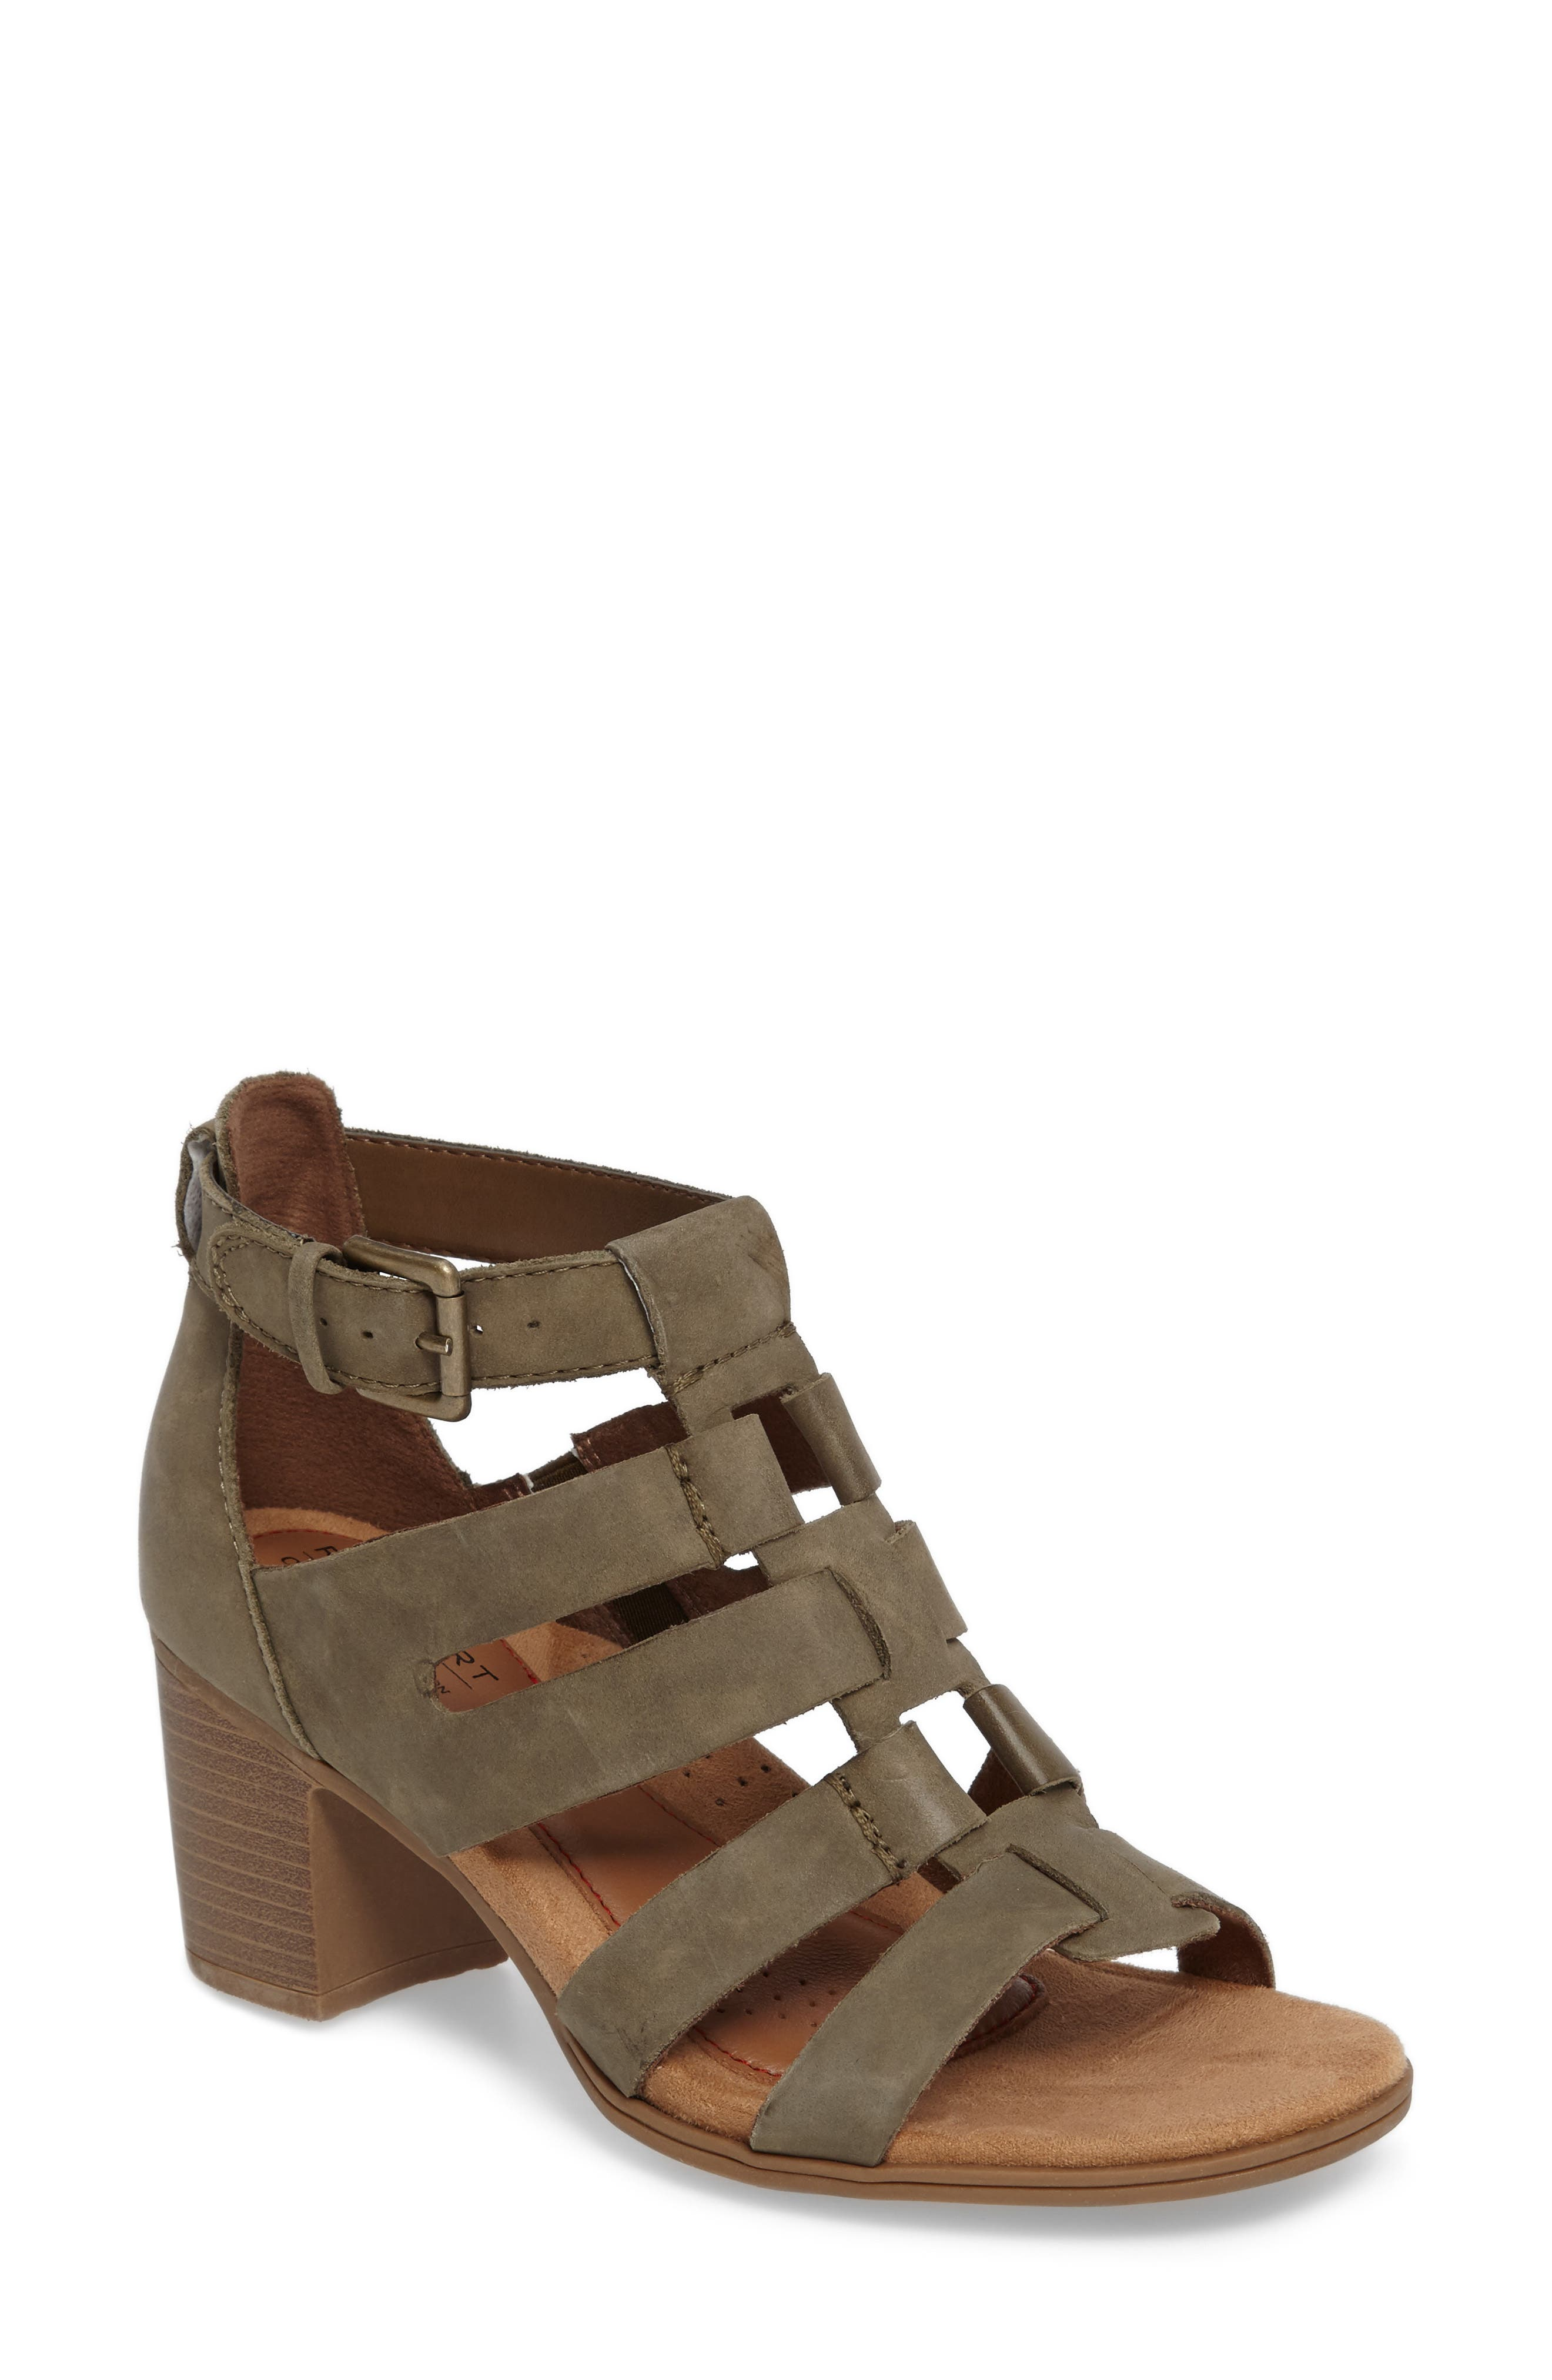 Main Image - Rockport Cobb Hill Hattie Block Heel Gladiator Sandal (Women)